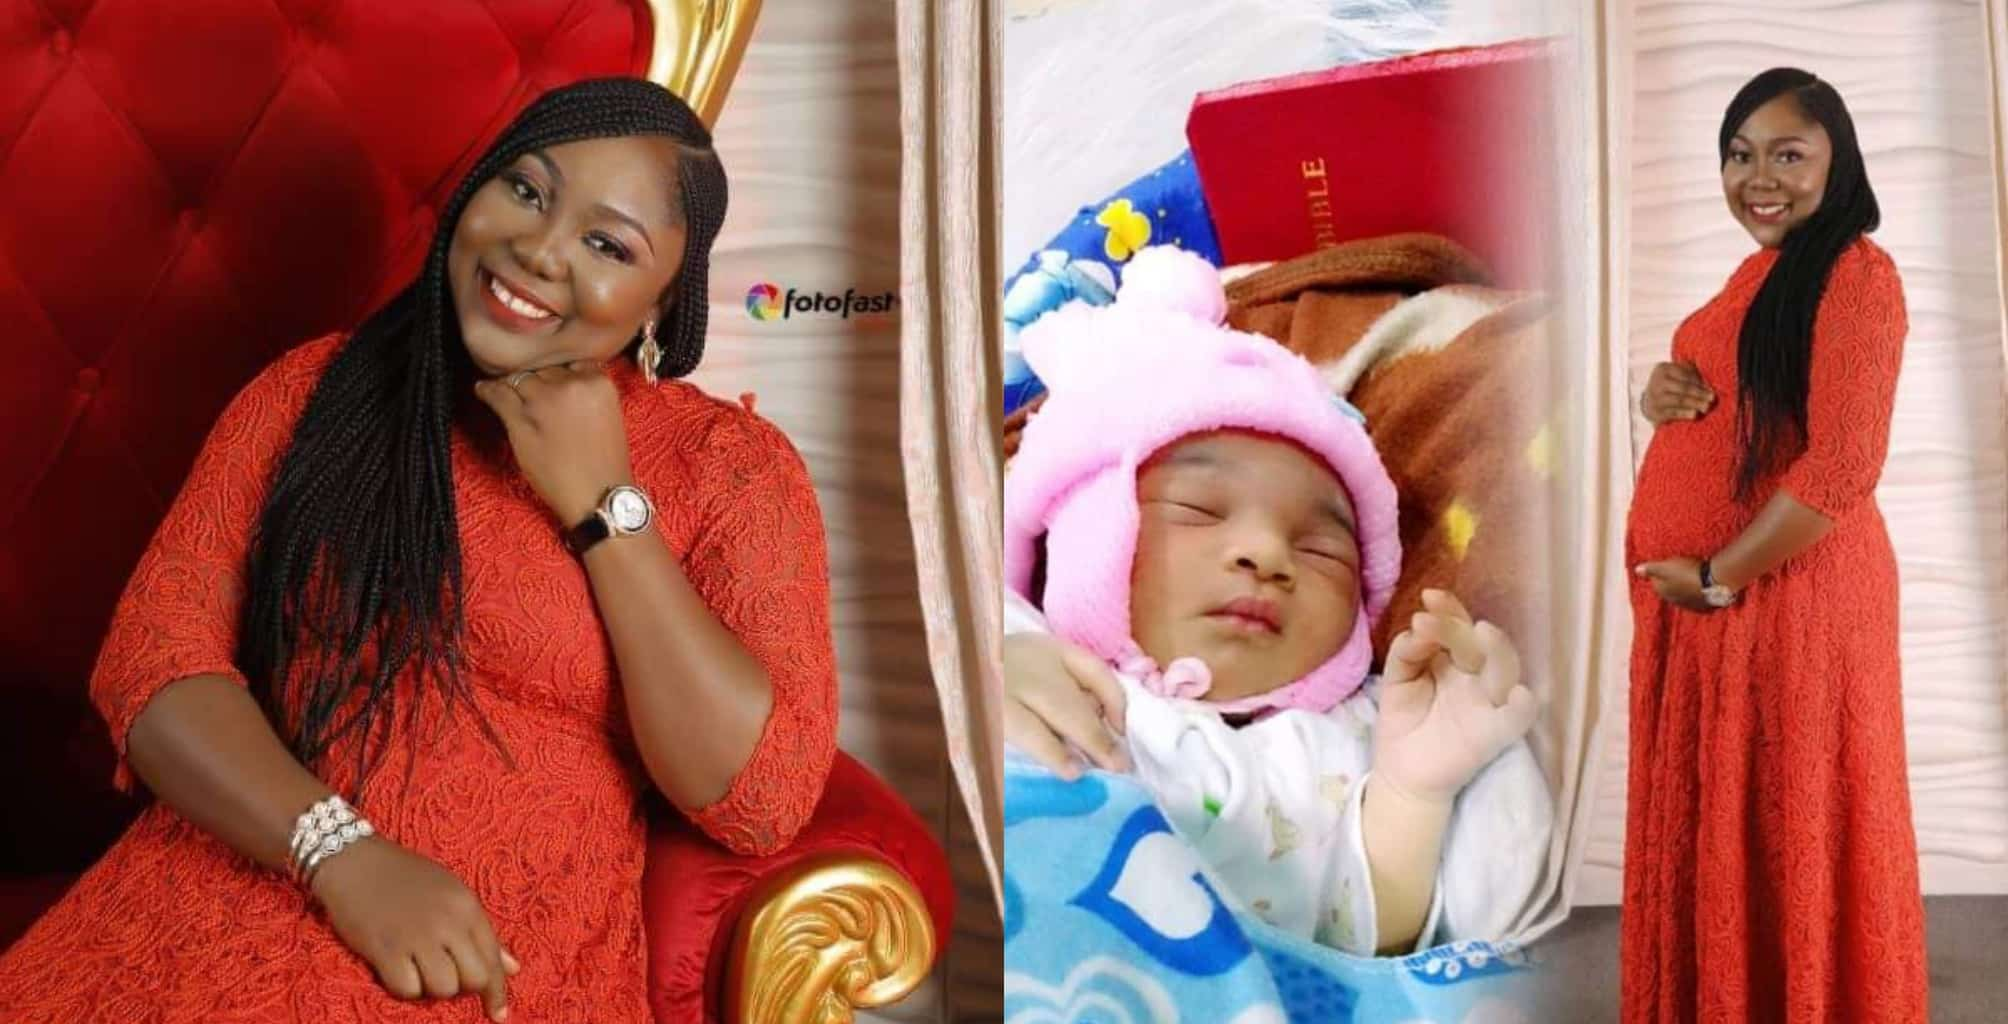 Lady gives birth after 2 years of pregnancy